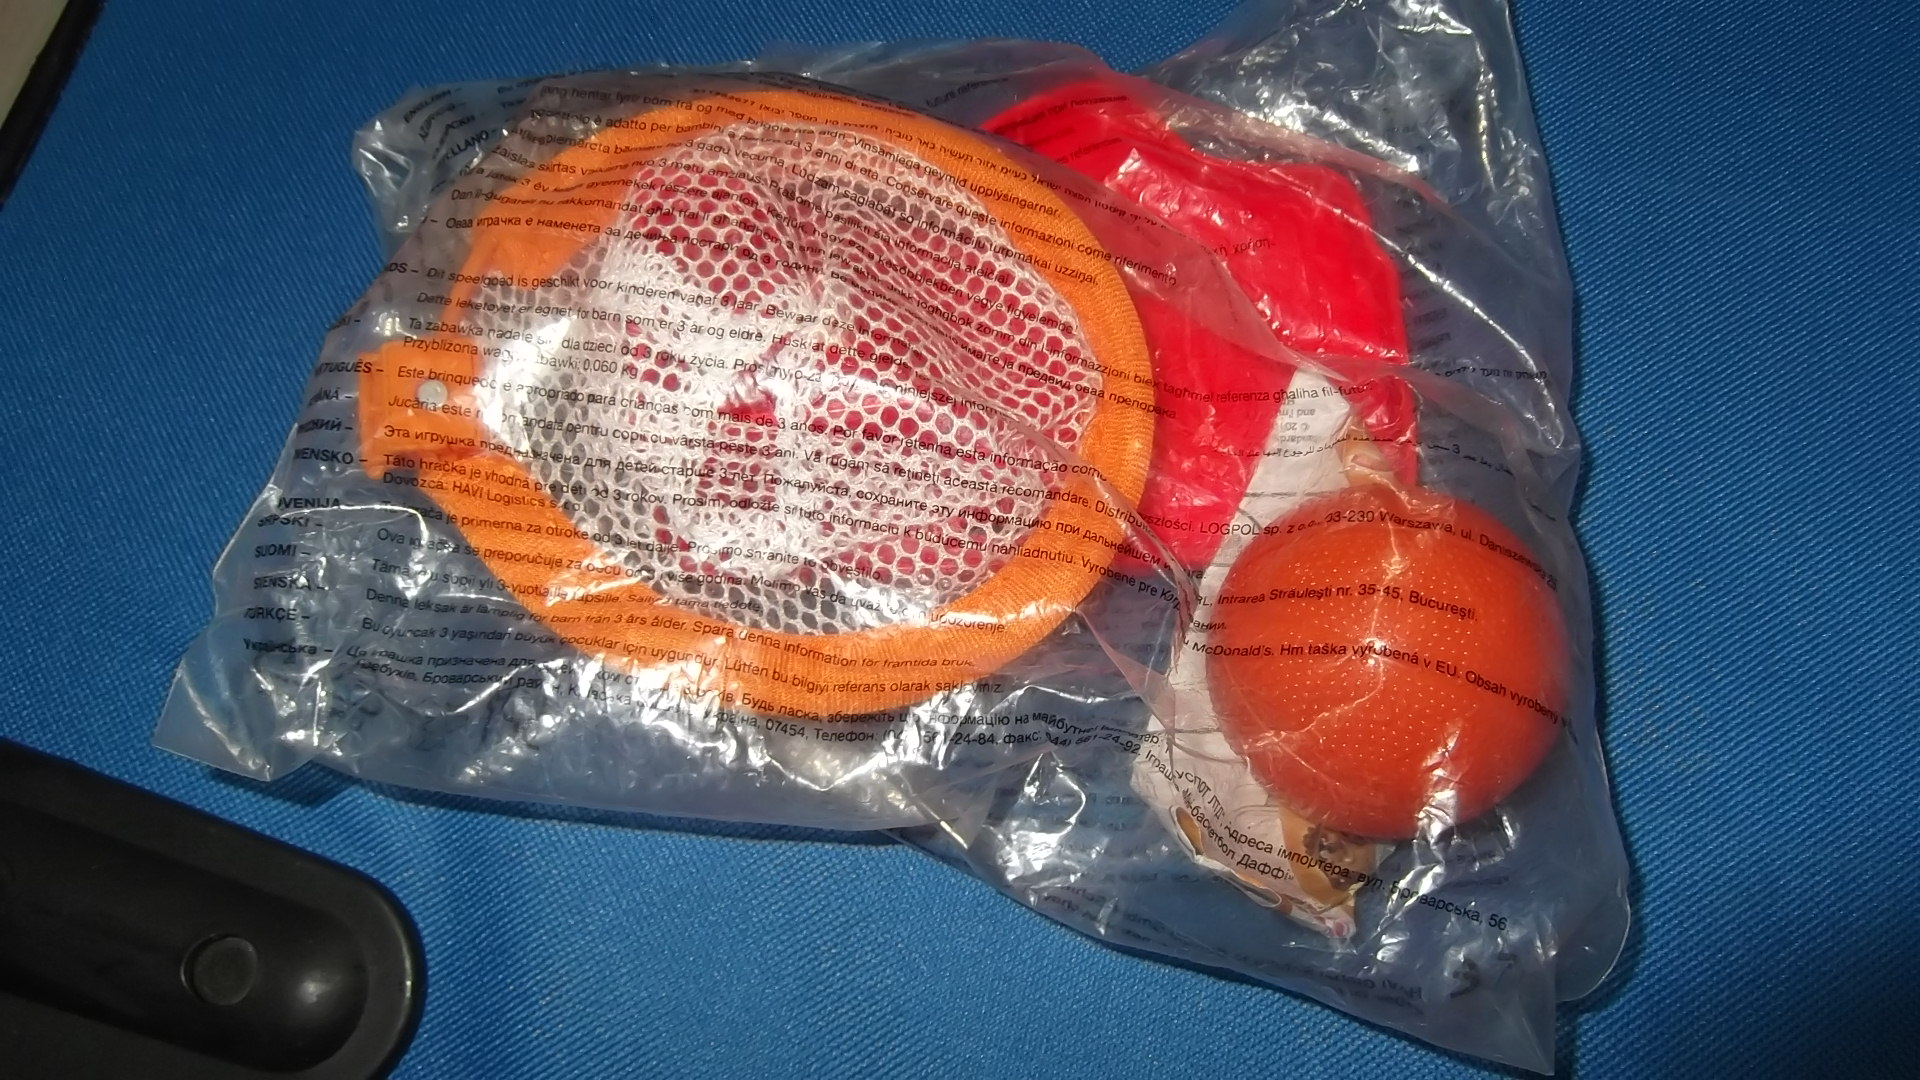 McDonalds Looney Tunes Active Daffy Duck & Tweety Pie Basketball Hoop & Ball Toy From 2010 New